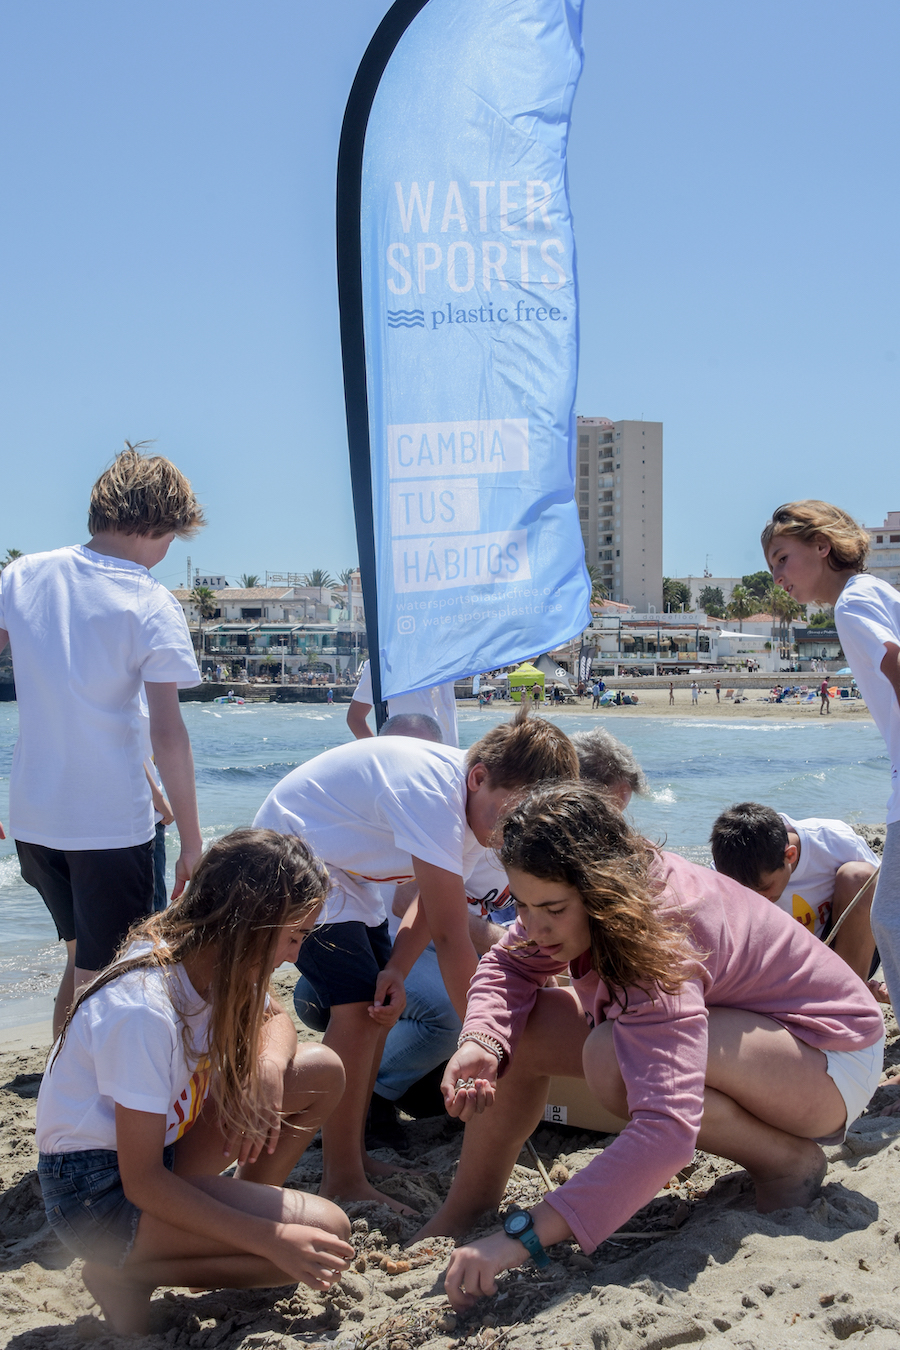 SUP Talent Spain Series - Fundacion Water Sports Plastic Free